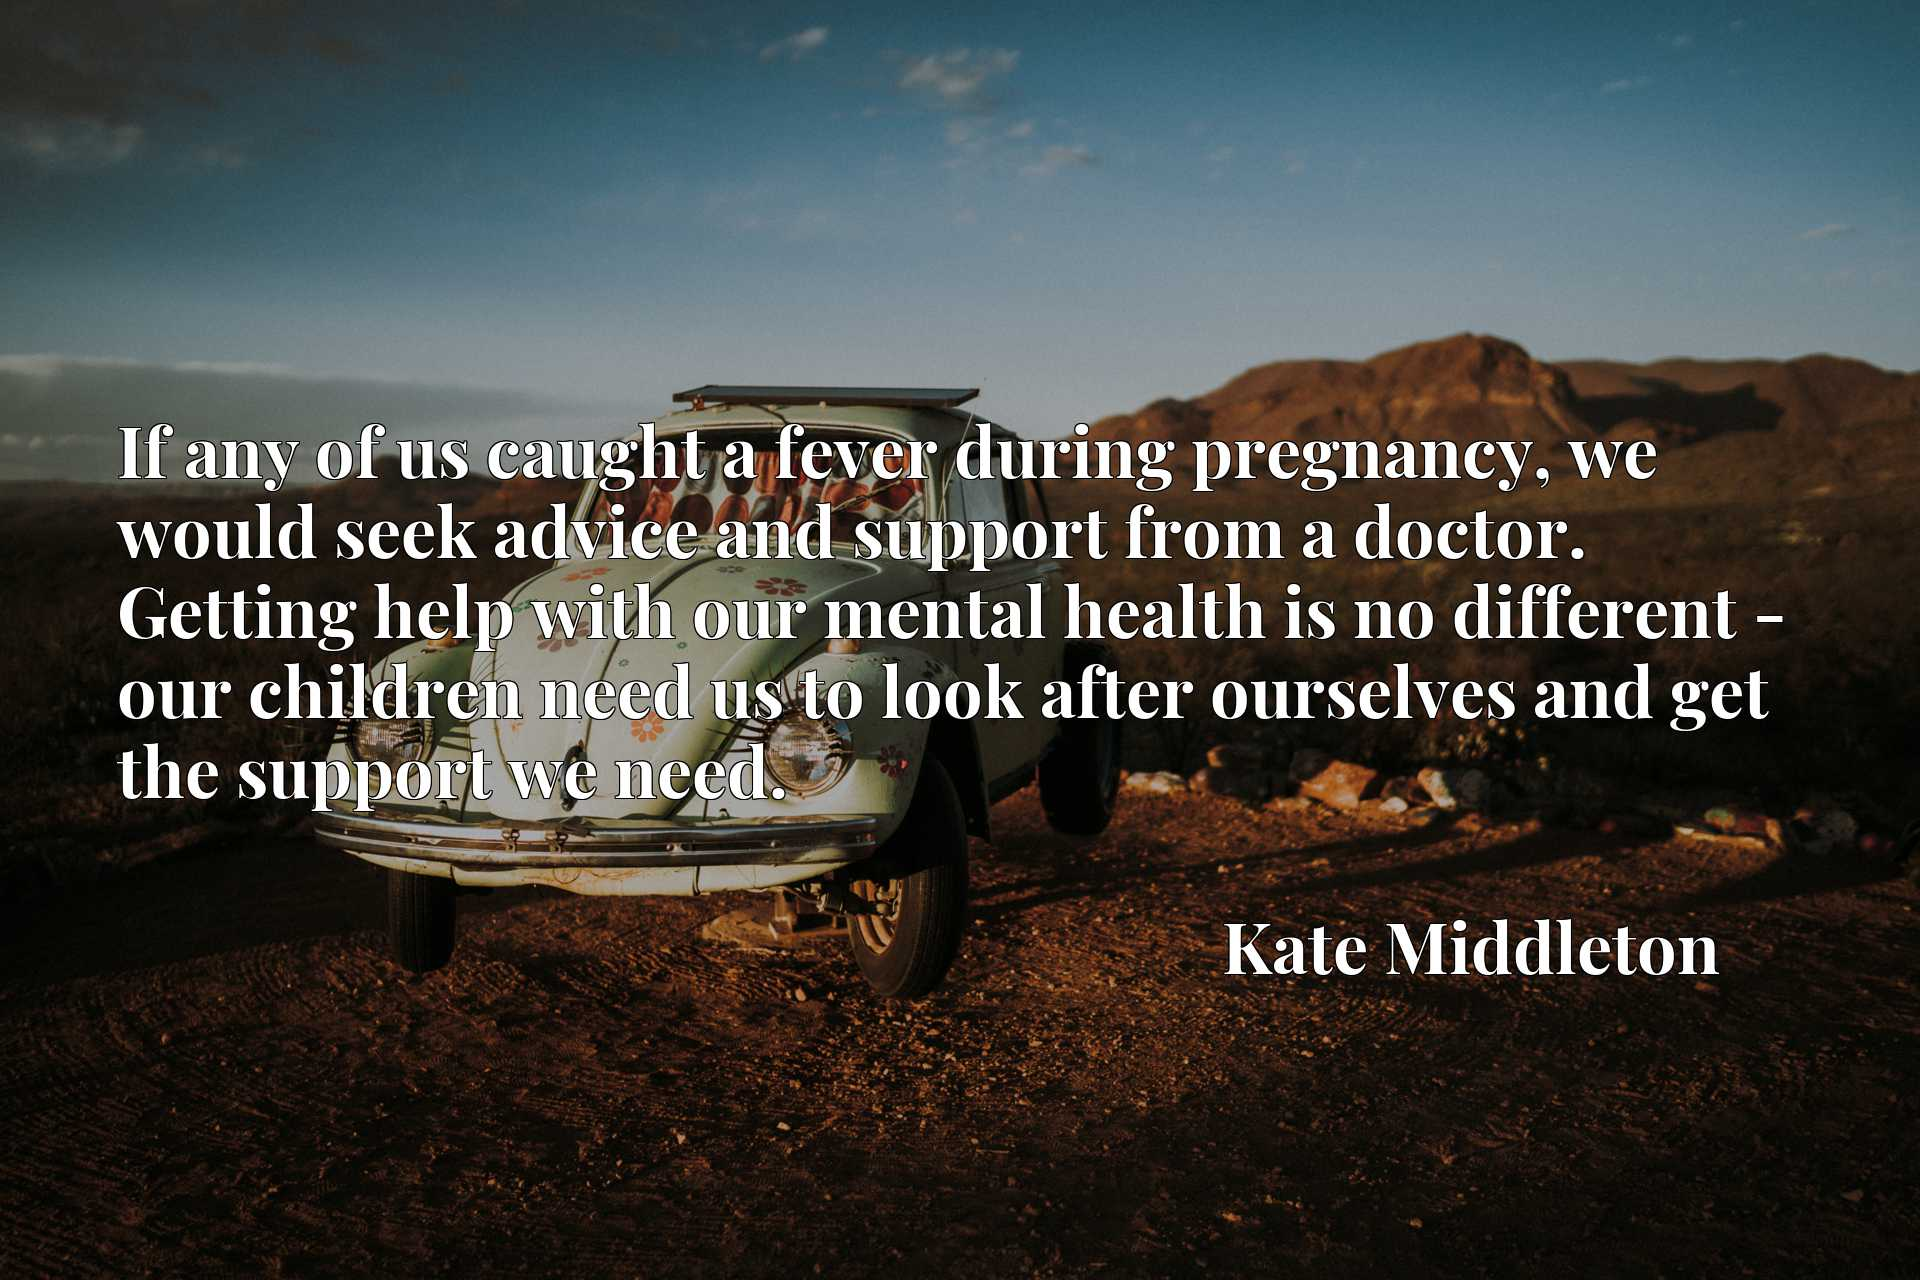 If any of us caught a fever during pregnancy, we would seek advice and support from a doctor. Getting help with our mental health is no different - our children need us to look after ourselves and get the support we need.